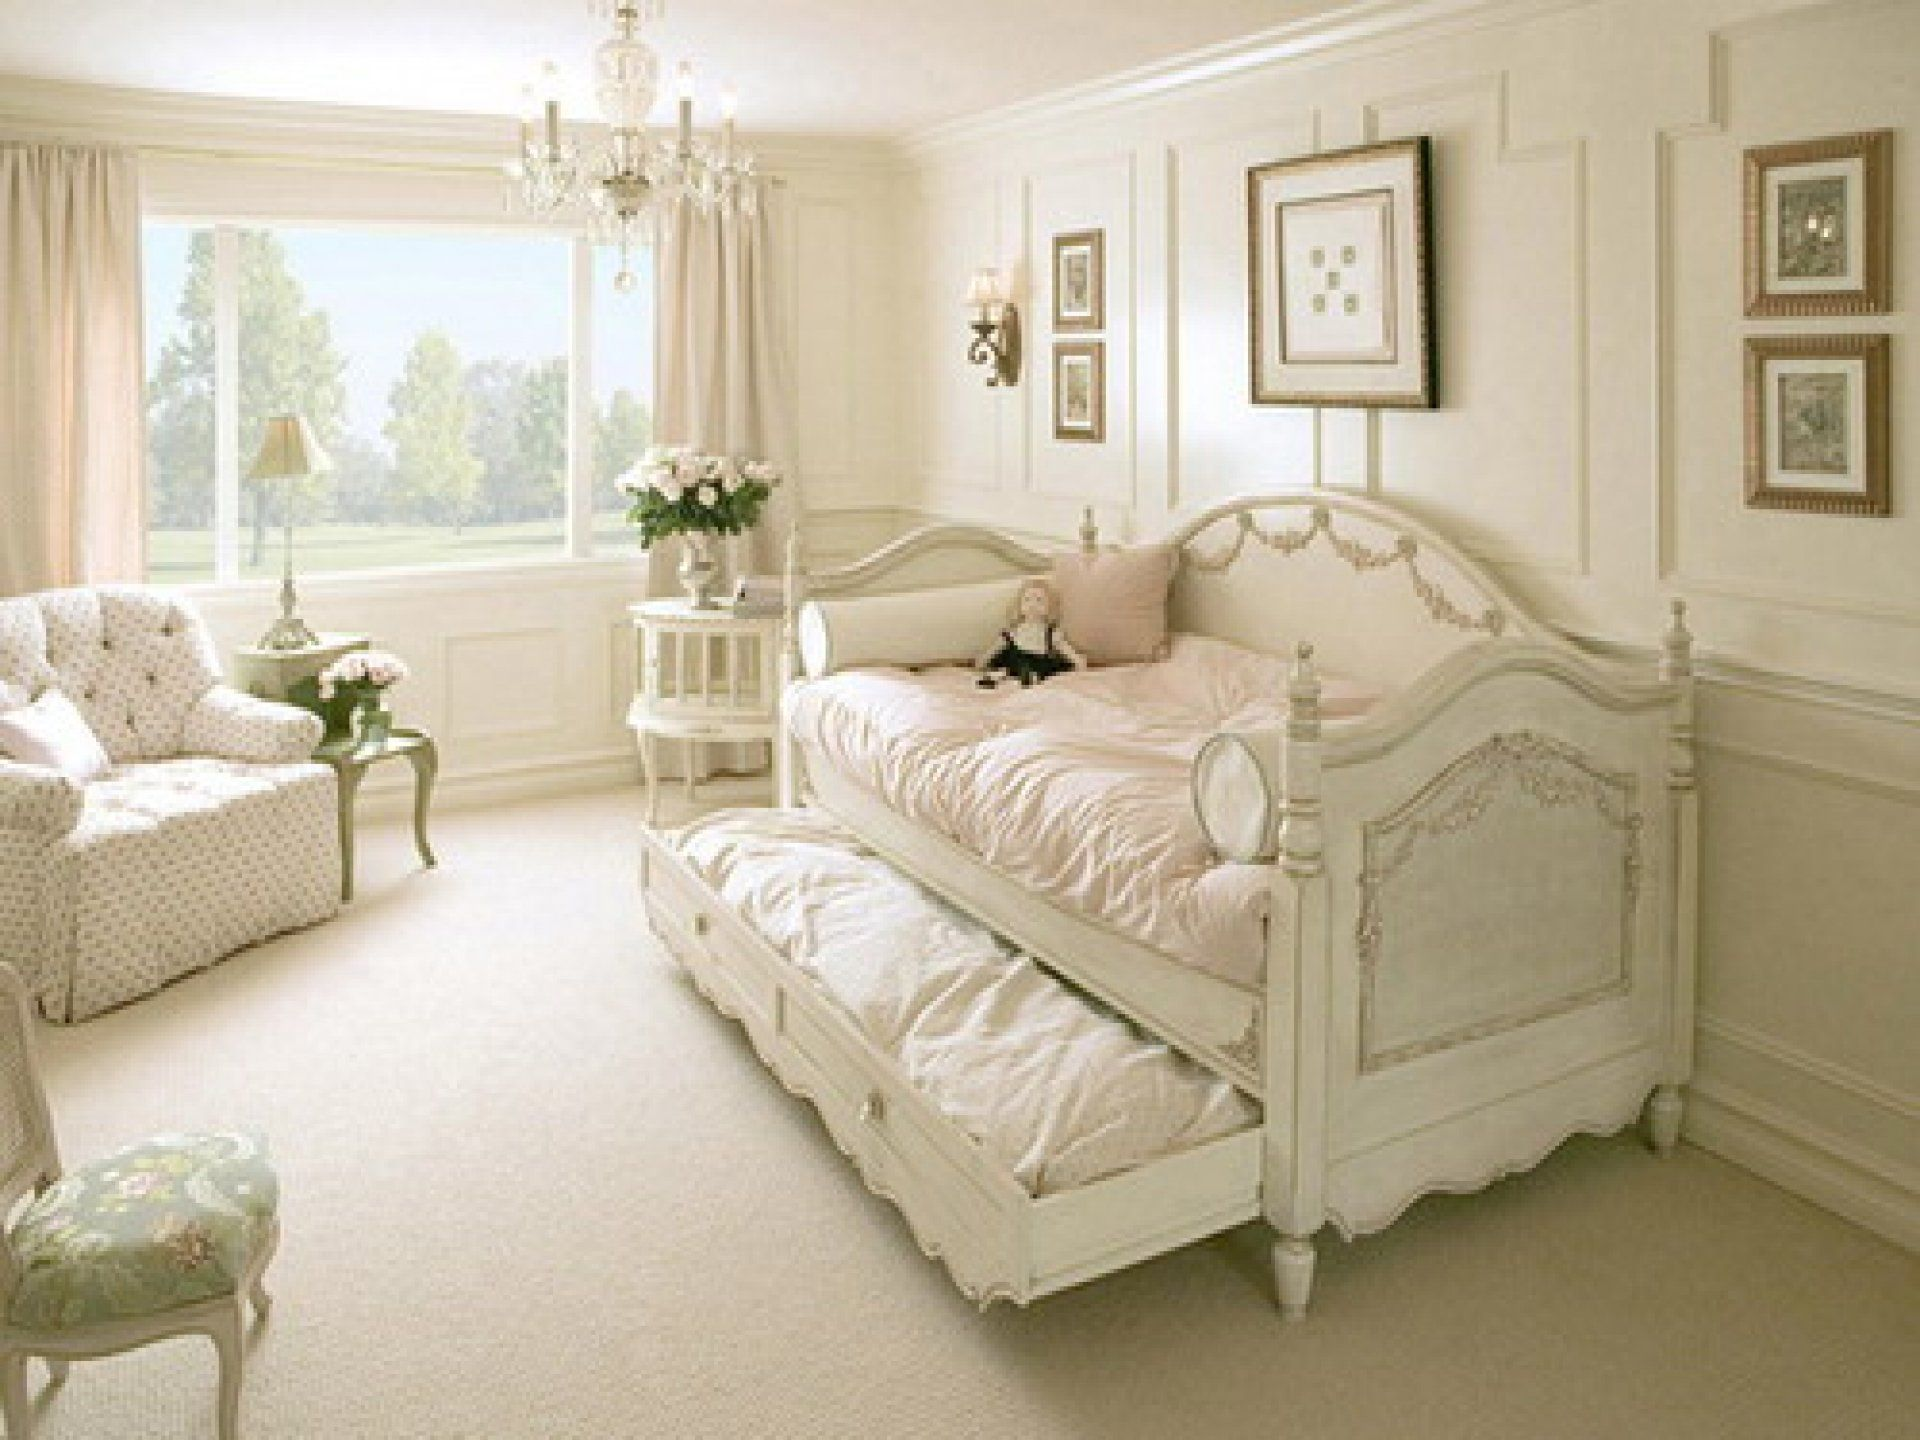 Elegant Bedroom What You Have To Install In French Country Bedroom Captivating French Country Bedroom Design Inspiration